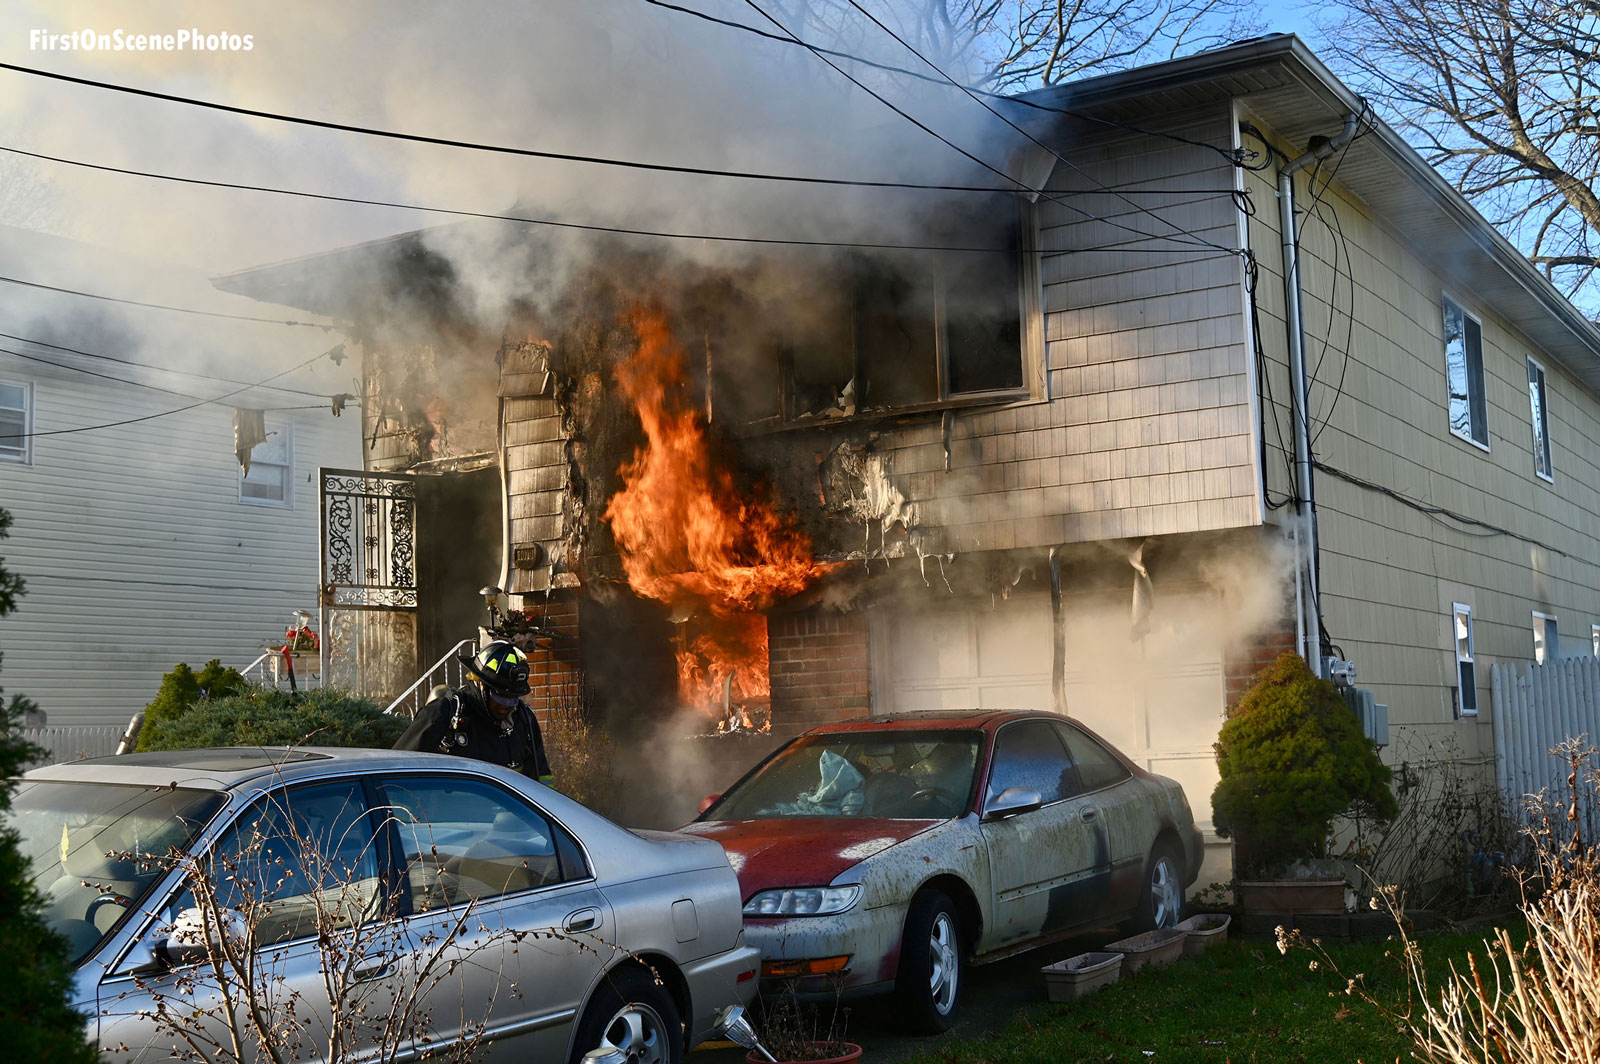 Firefighters responded to this recent house fire.